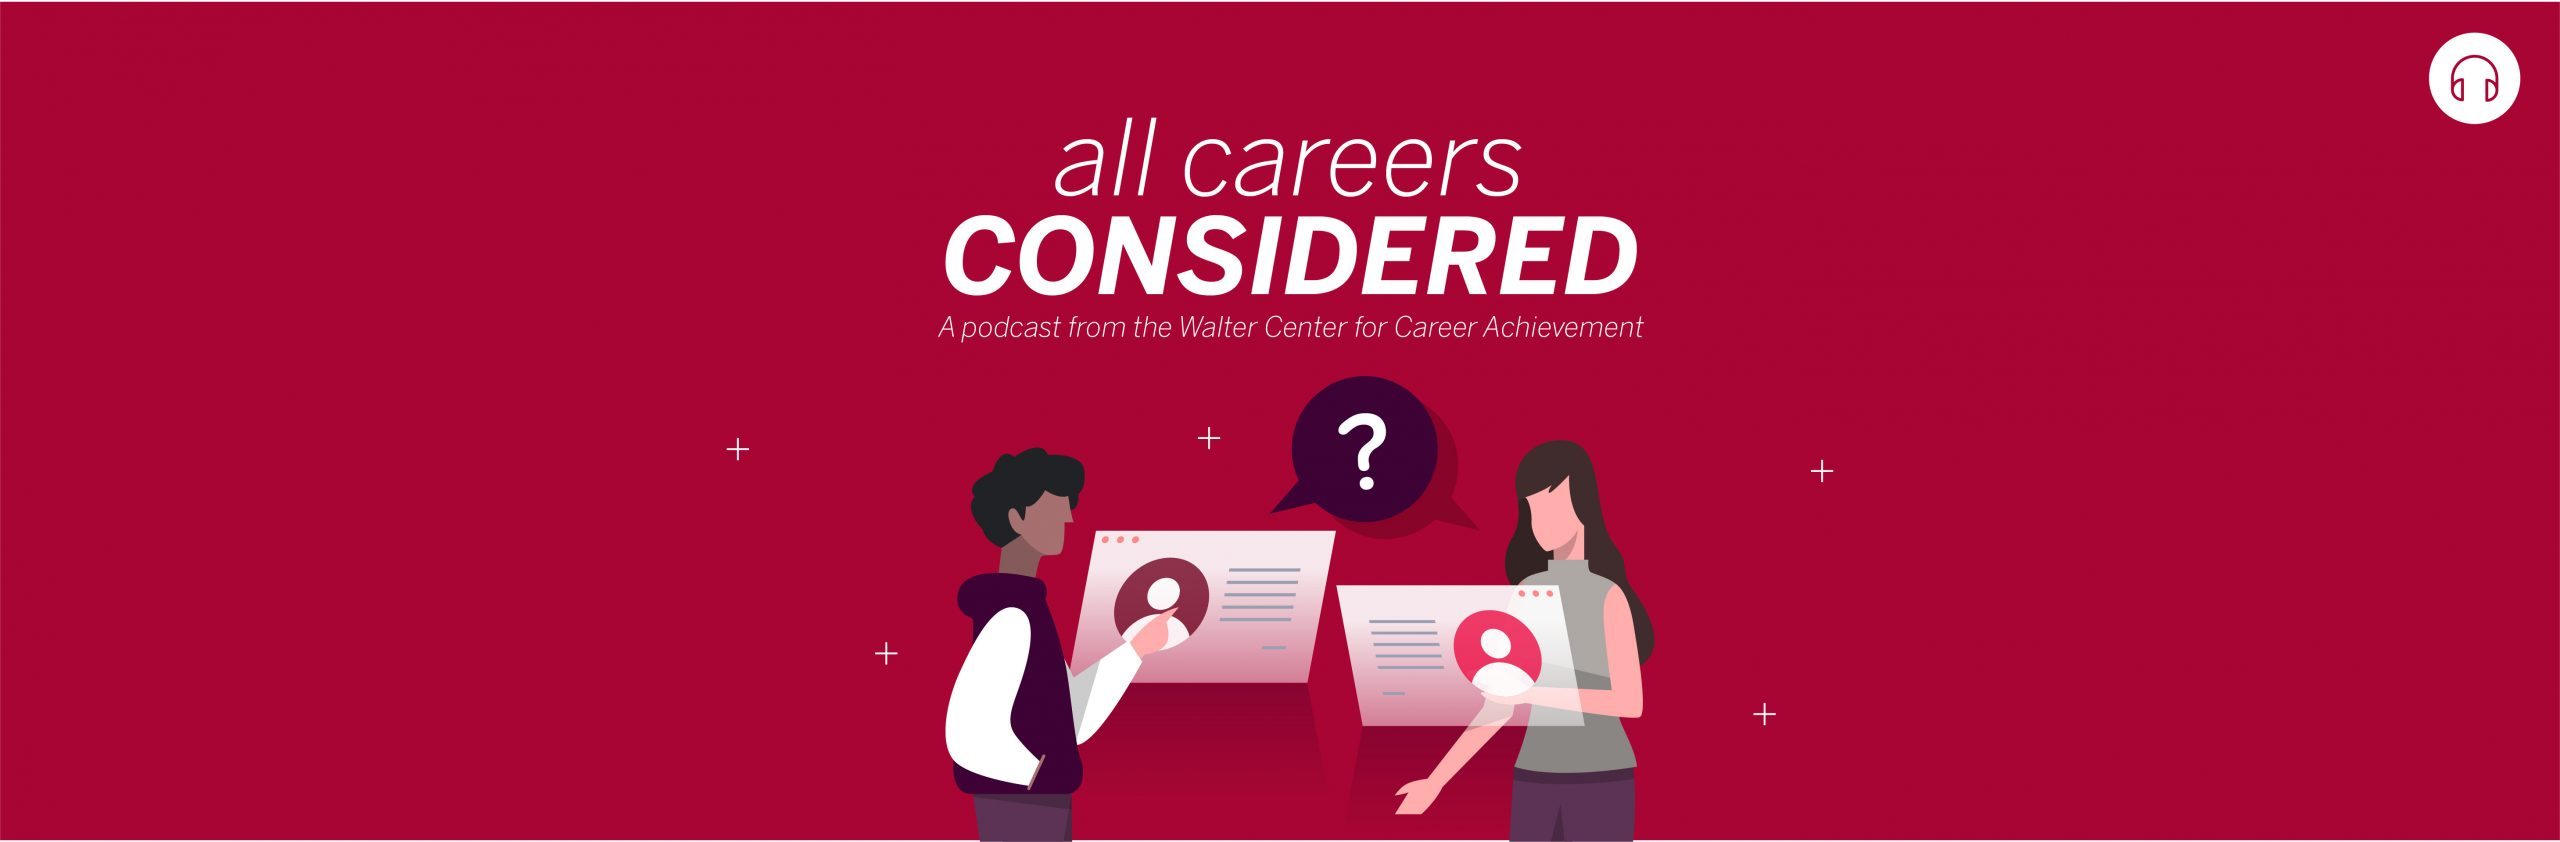 All Careers Considered: Breaking into the Tech Industry with Kieran Farr thumbnail image